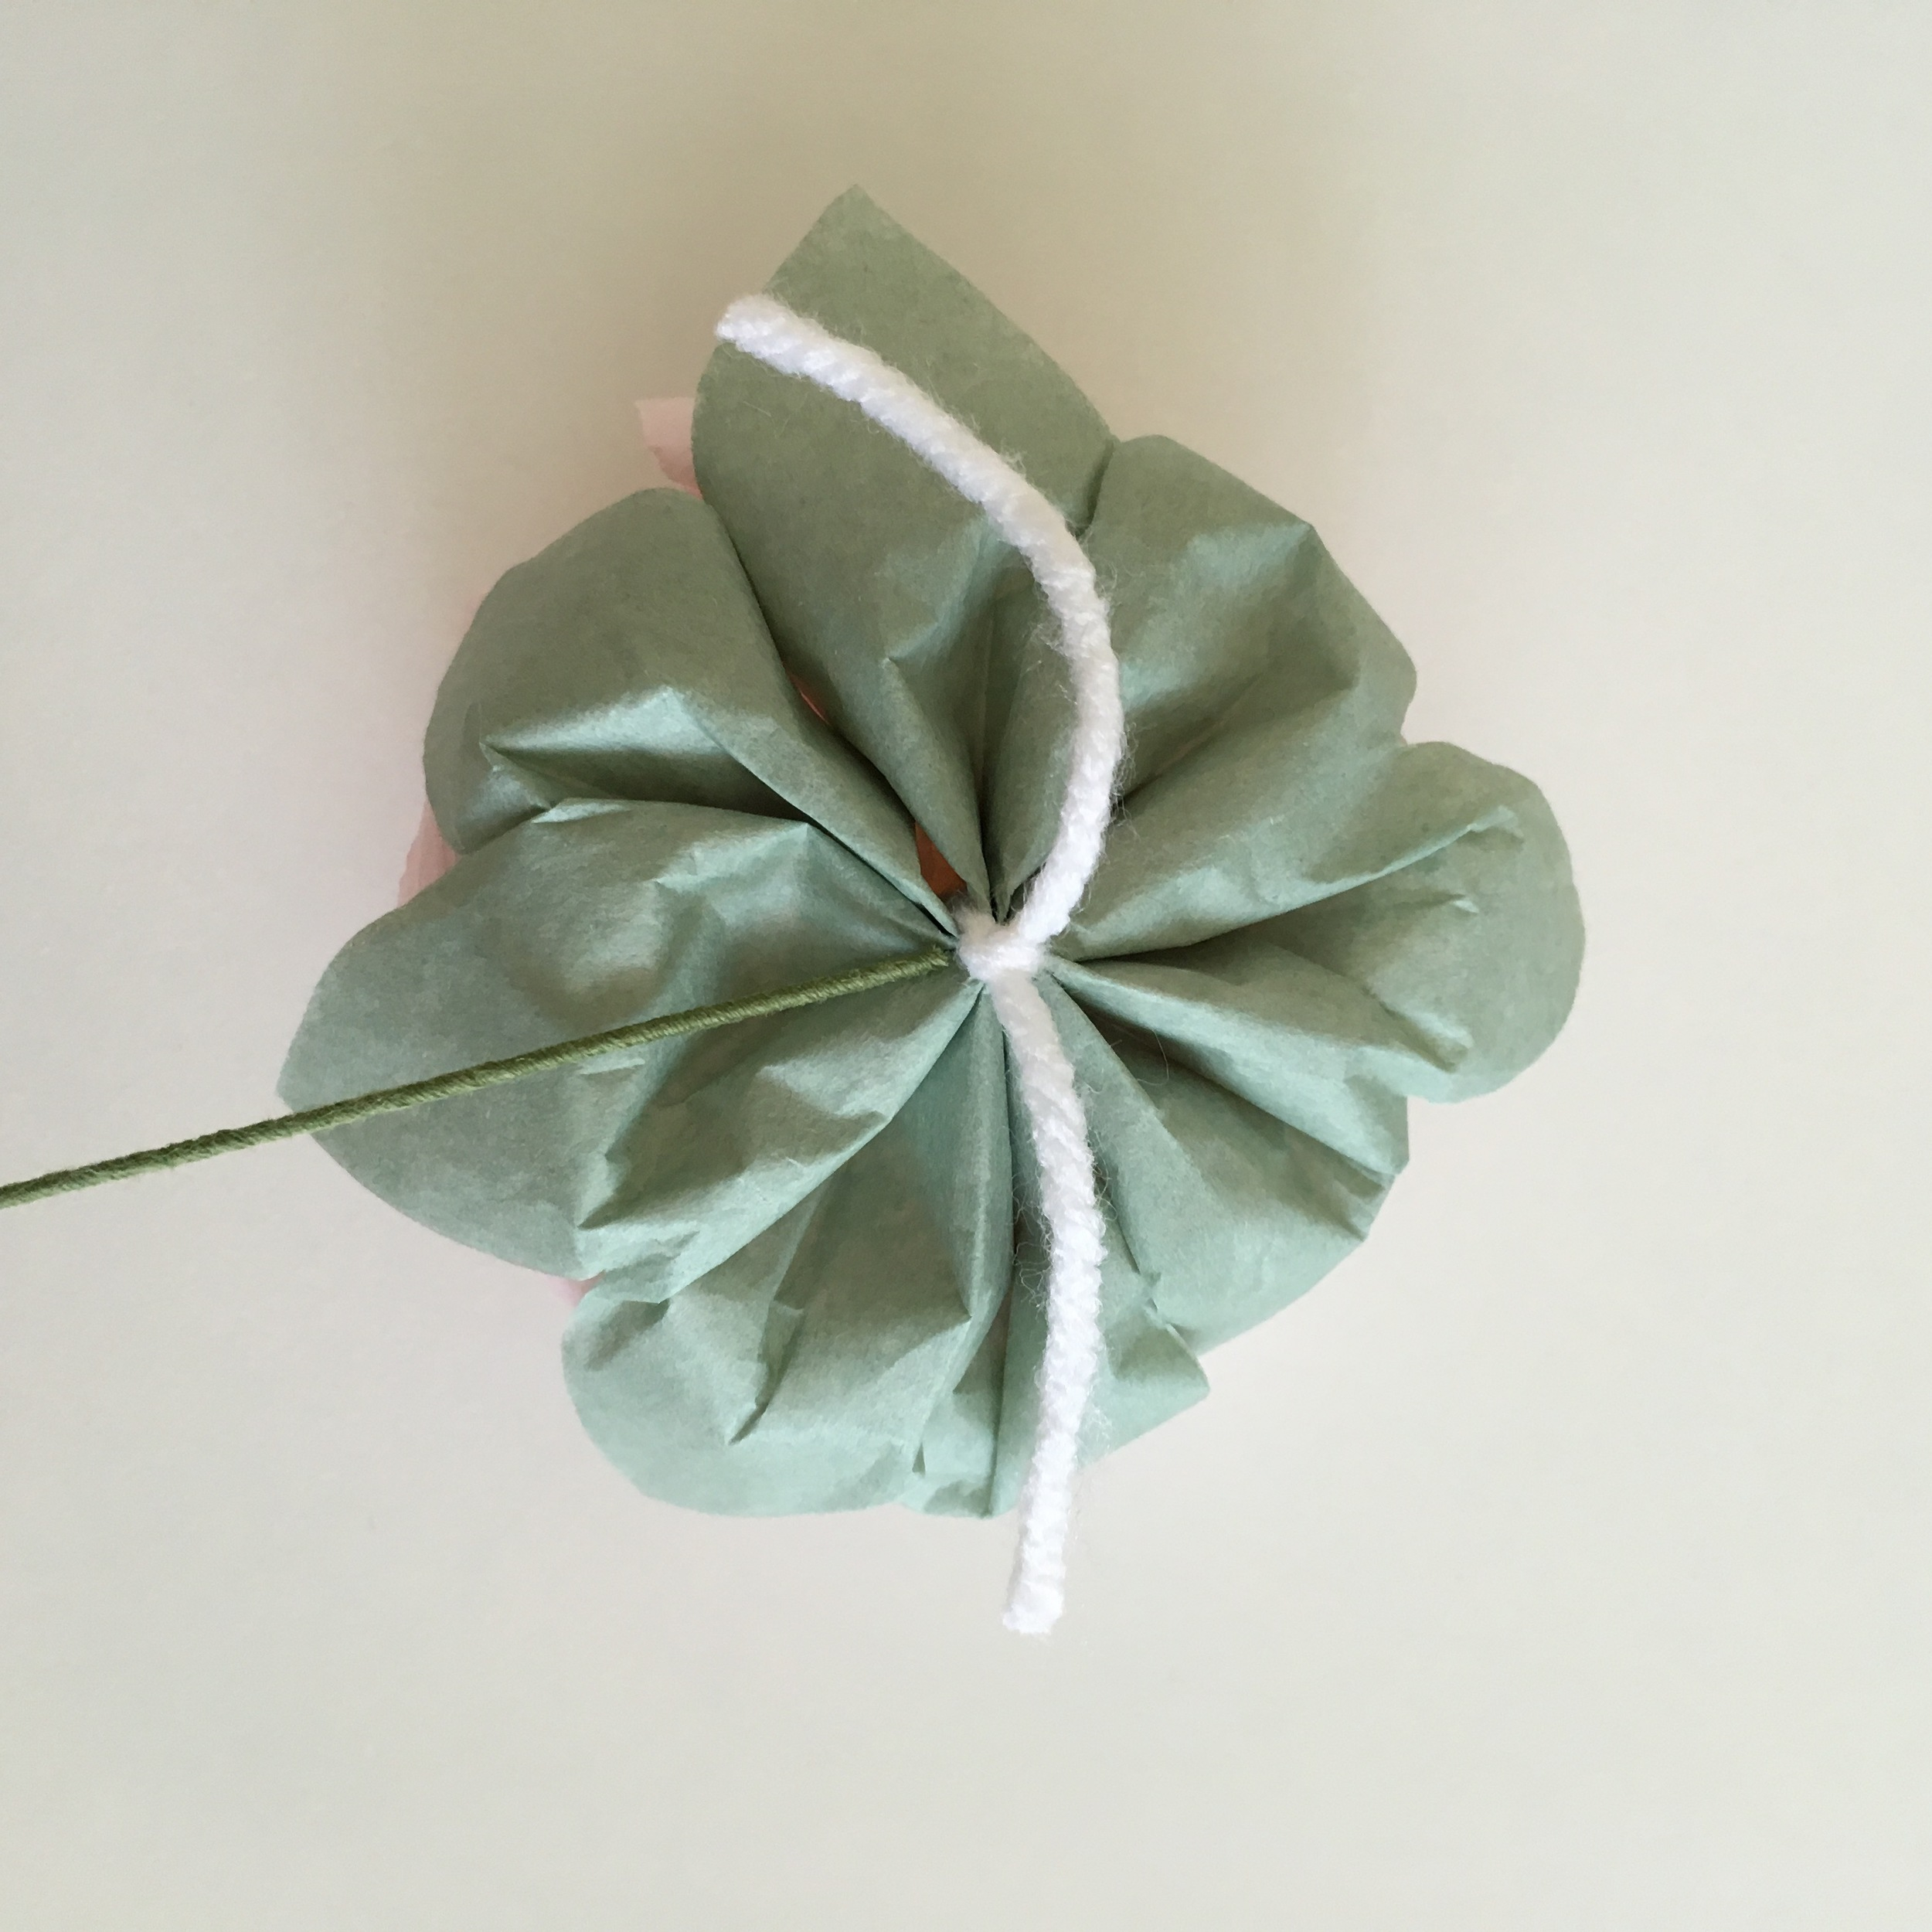 8. Holding the yarn knot, poke the floral wire through the opening between the knot and the paper flower.